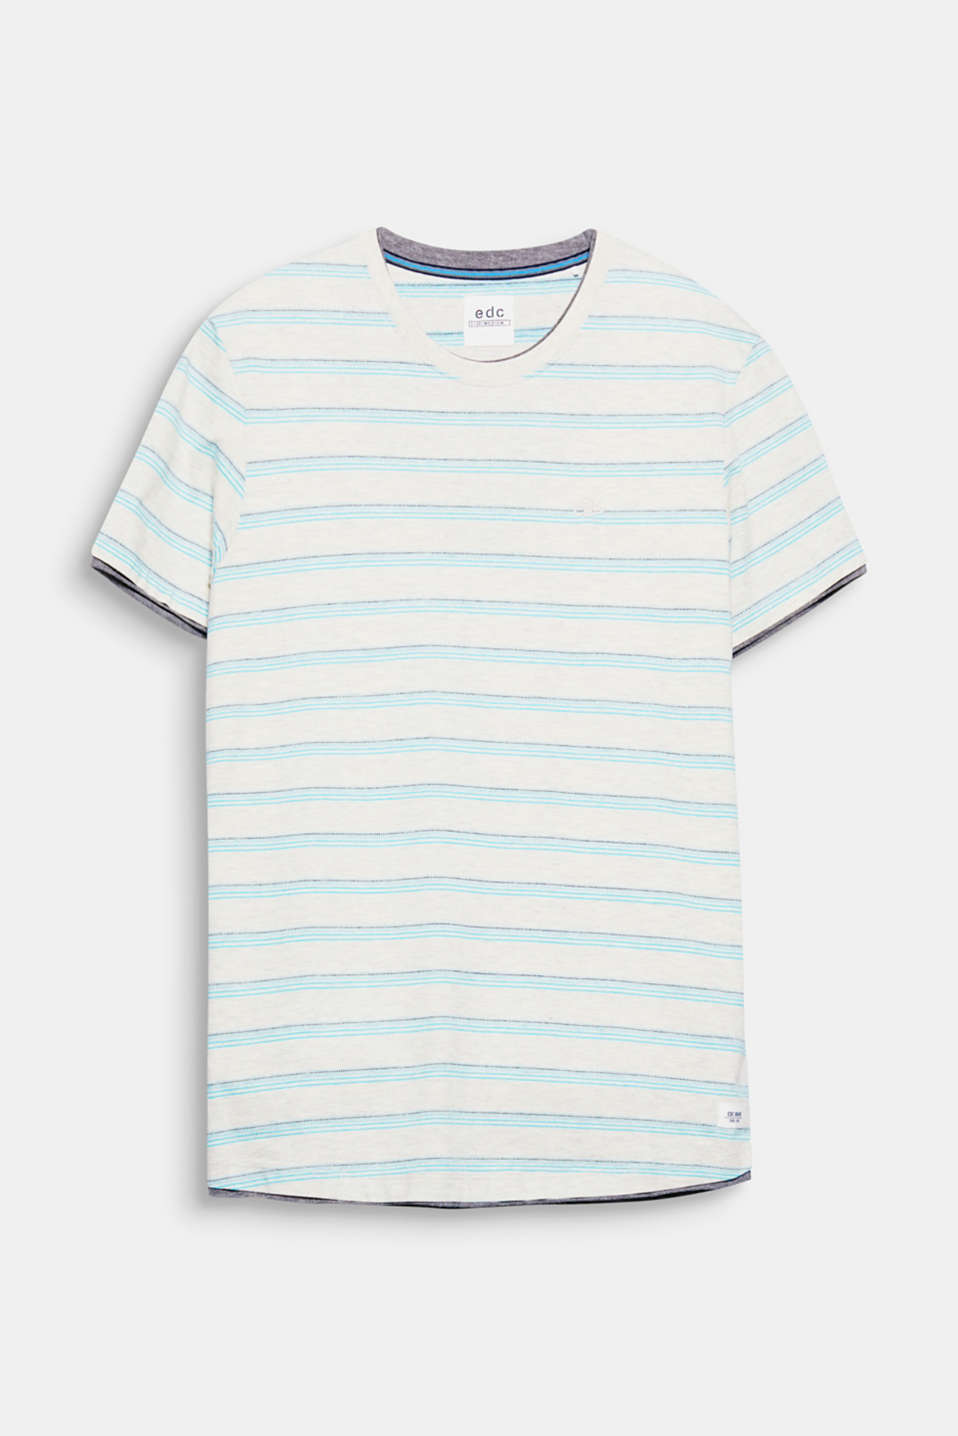 Melange jersey and sporty jacquard stripes add texture to this cotton T-shirt.